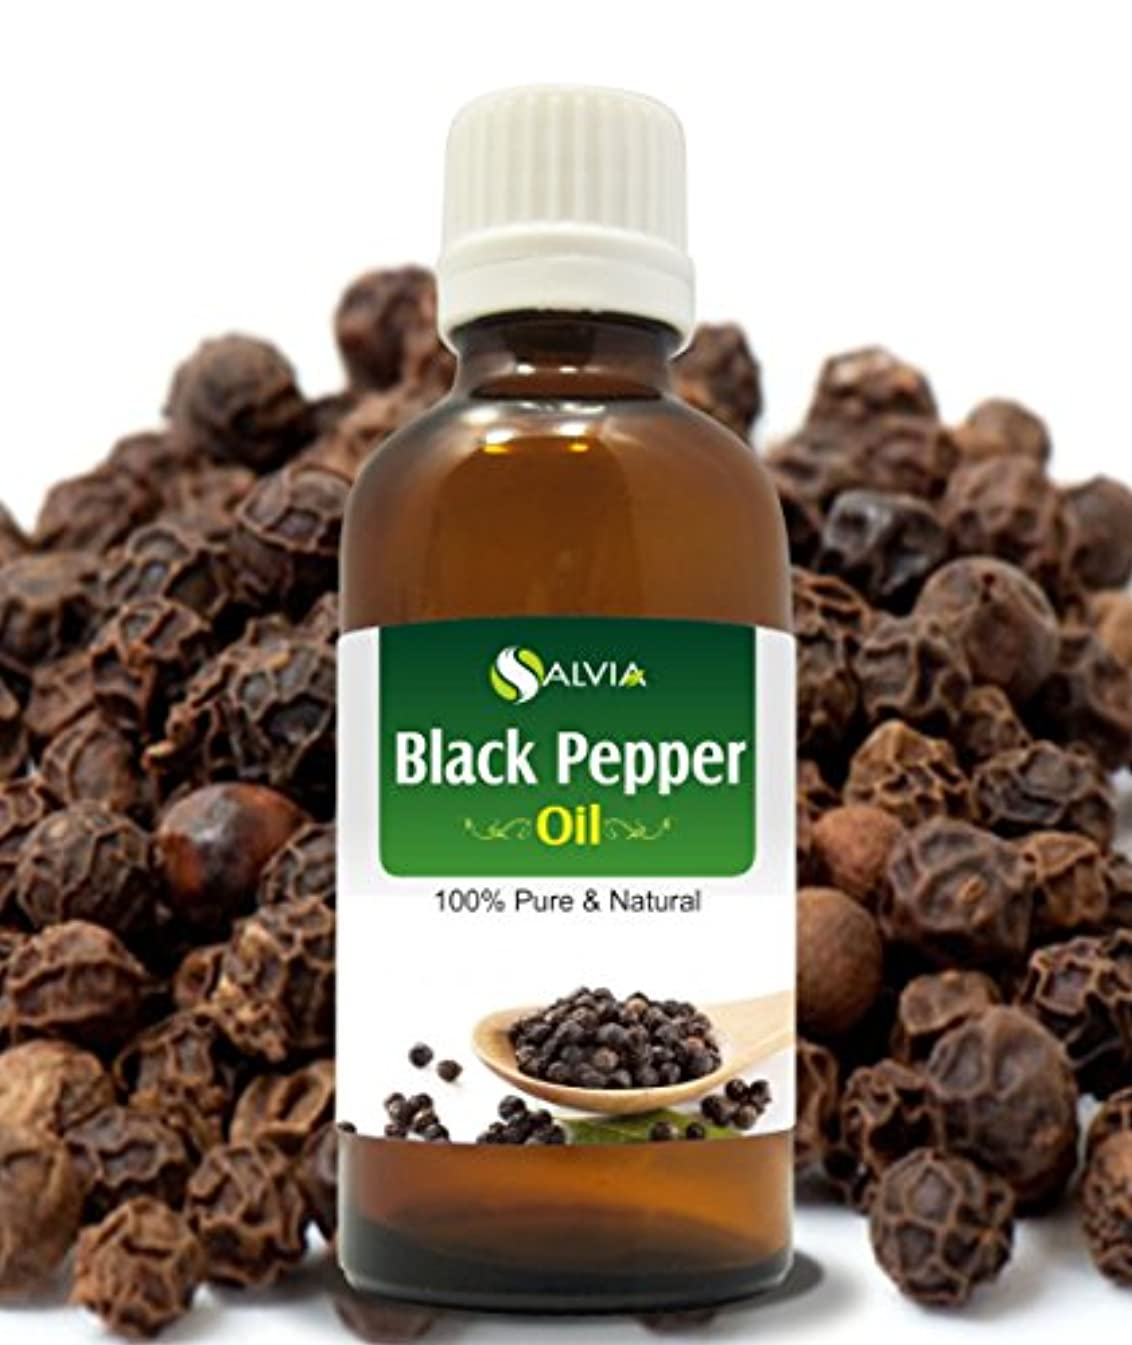 メールを書く球体悪性のBLACK PEPPER OIL 100% NATURAL PURE UNDILUTED UNCUT ESSENTIAL OIL 15ML